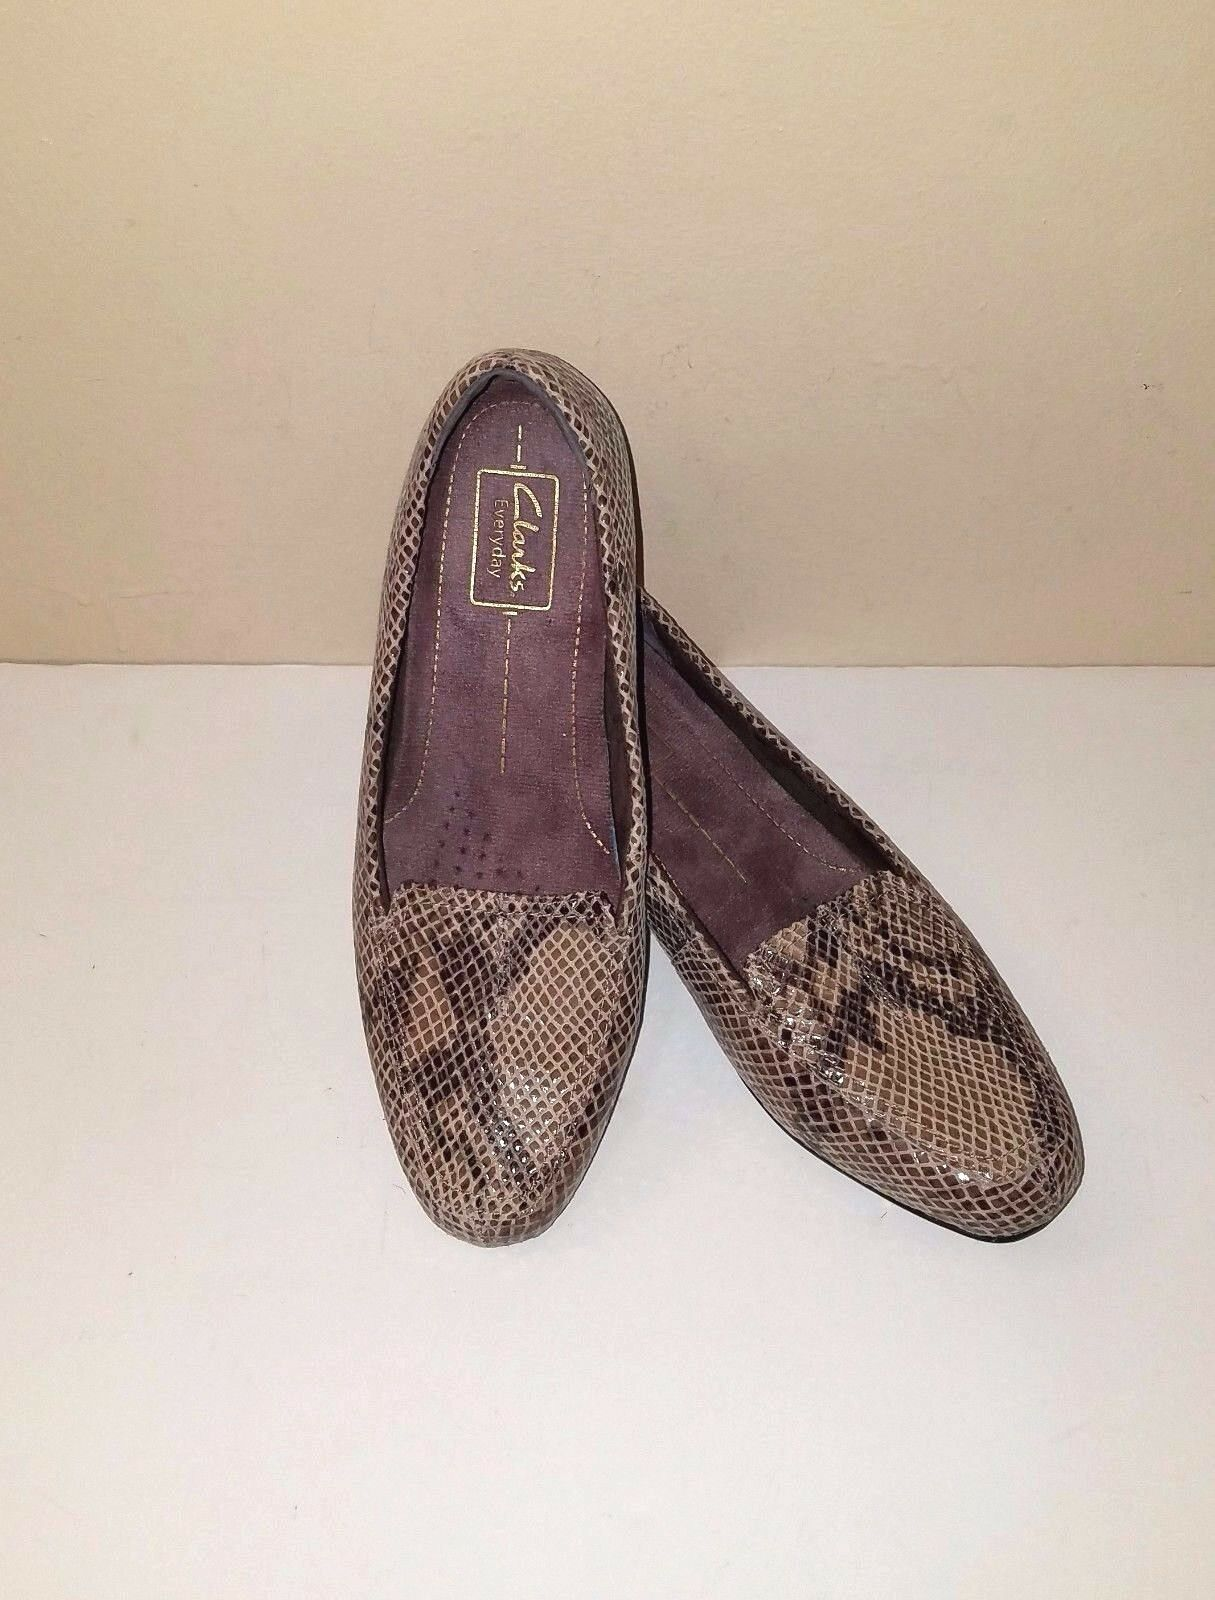 CLARKS  Natural Brown Python Print Suede Leather Low Heel Loafer Sz. 7.5 M